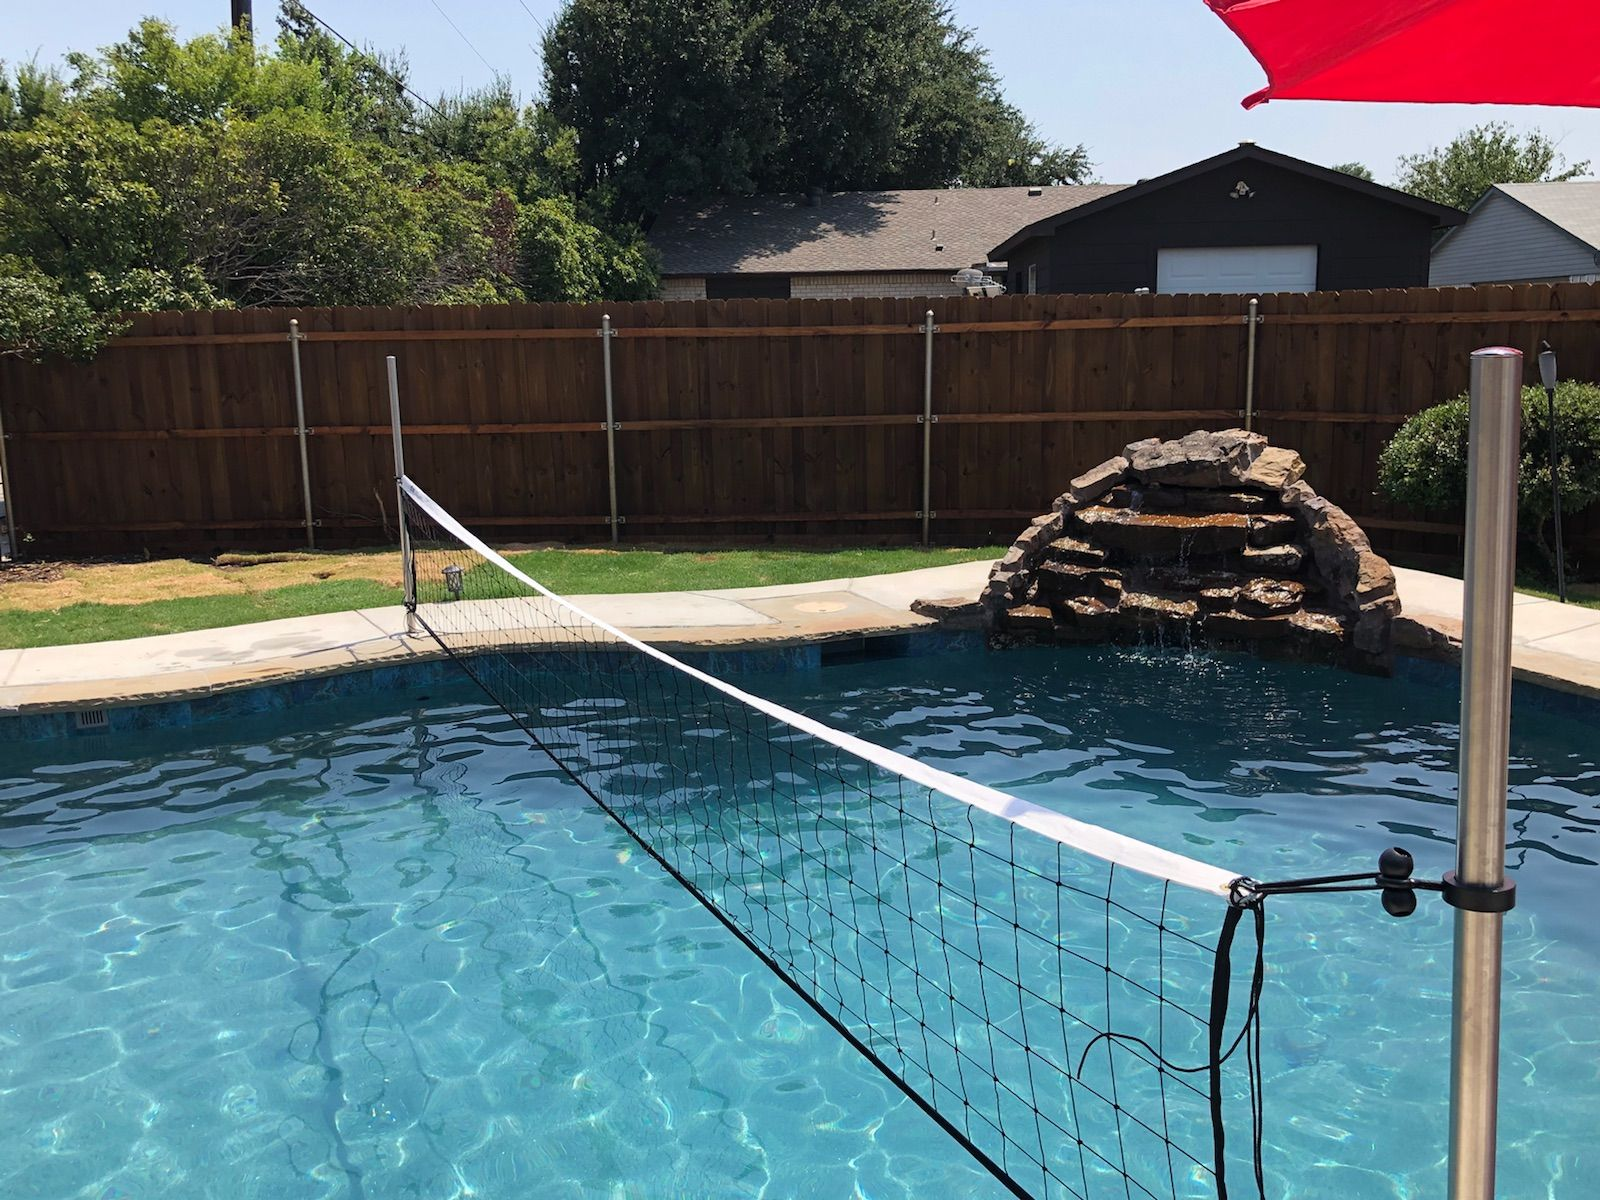 Commercial Grade Pool Volleyball Sets And Volleyball Nets Volleyball Pool Adjustable System Height Party Sets Commerc In 2020 Volleyball Set Pool Volleyball Nets